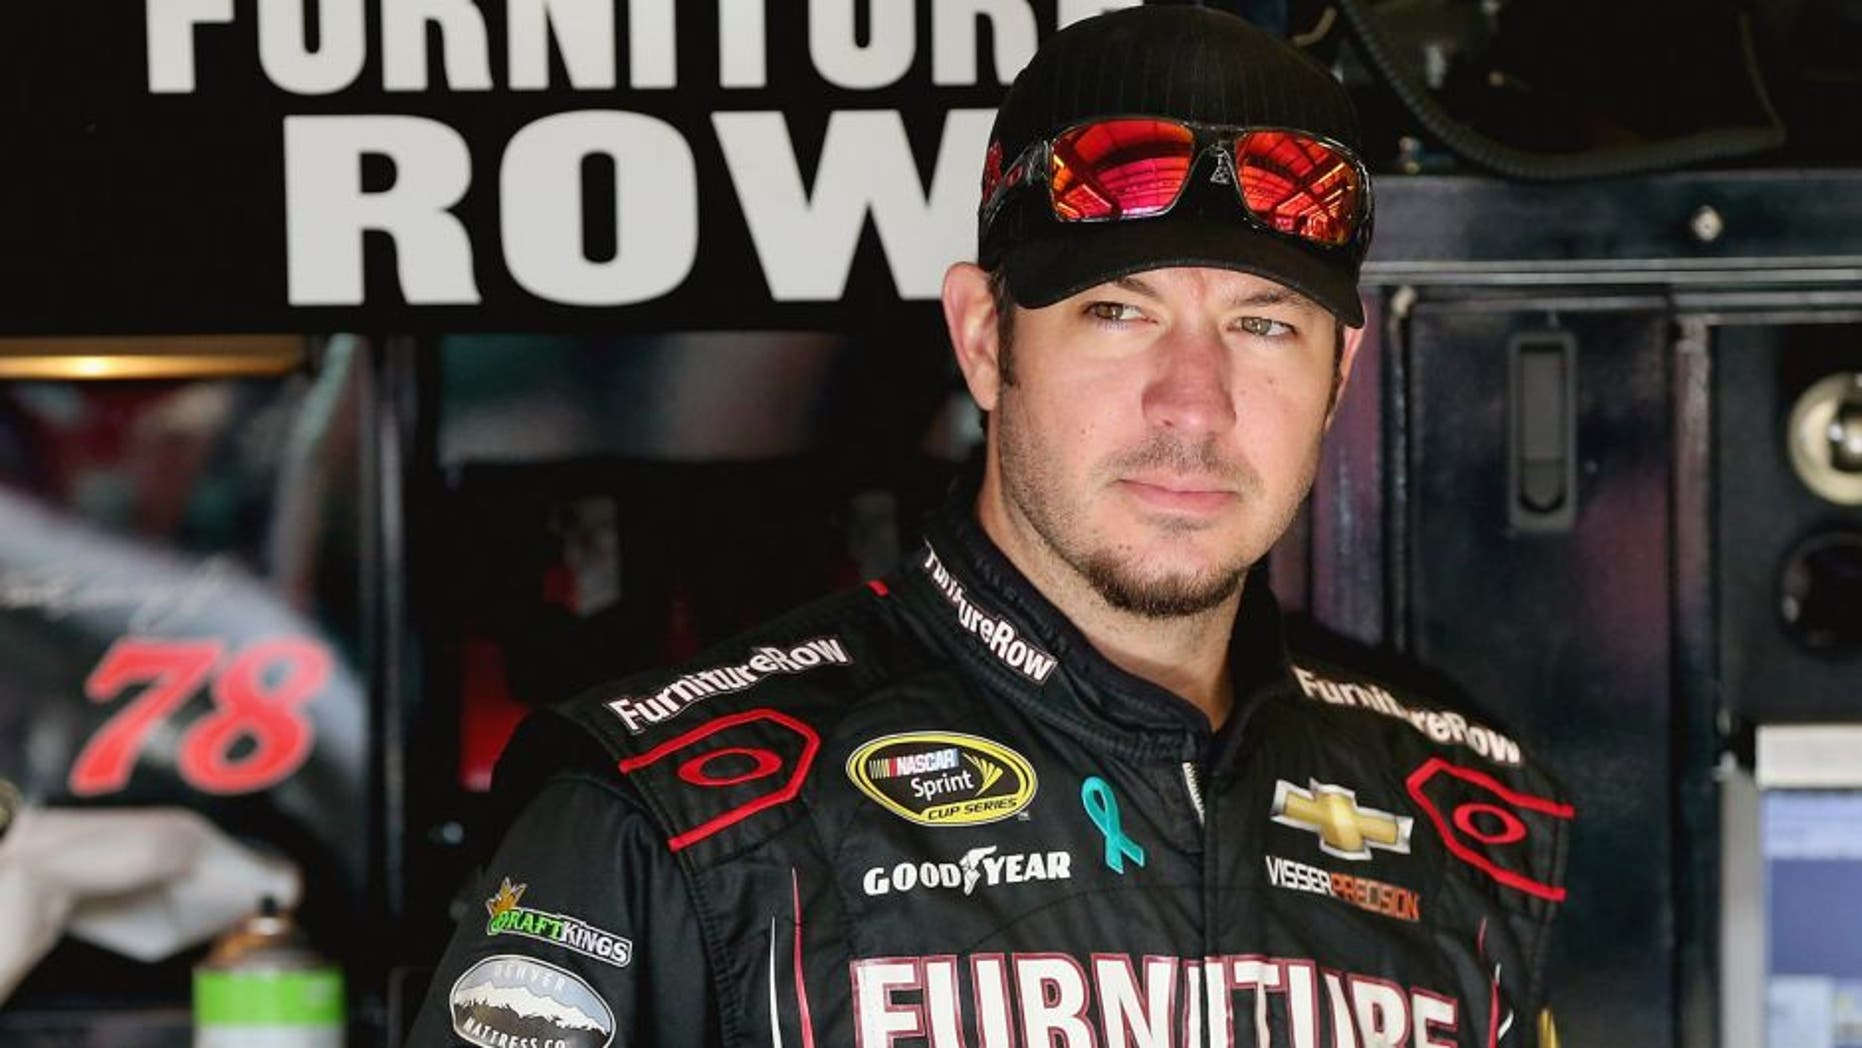 Martin Truex Jr, driver of the #78 Furniture Row/Visser Precision Chevrolet, stands in the garage area during practice for the NASCAR Sprint Cup Series MyAFibRisk.com 400 at Chicagoland Speedway on September 19, 2015 in Joliet, Illinois. (Photo by Jonathan Daniel/Getty Images)